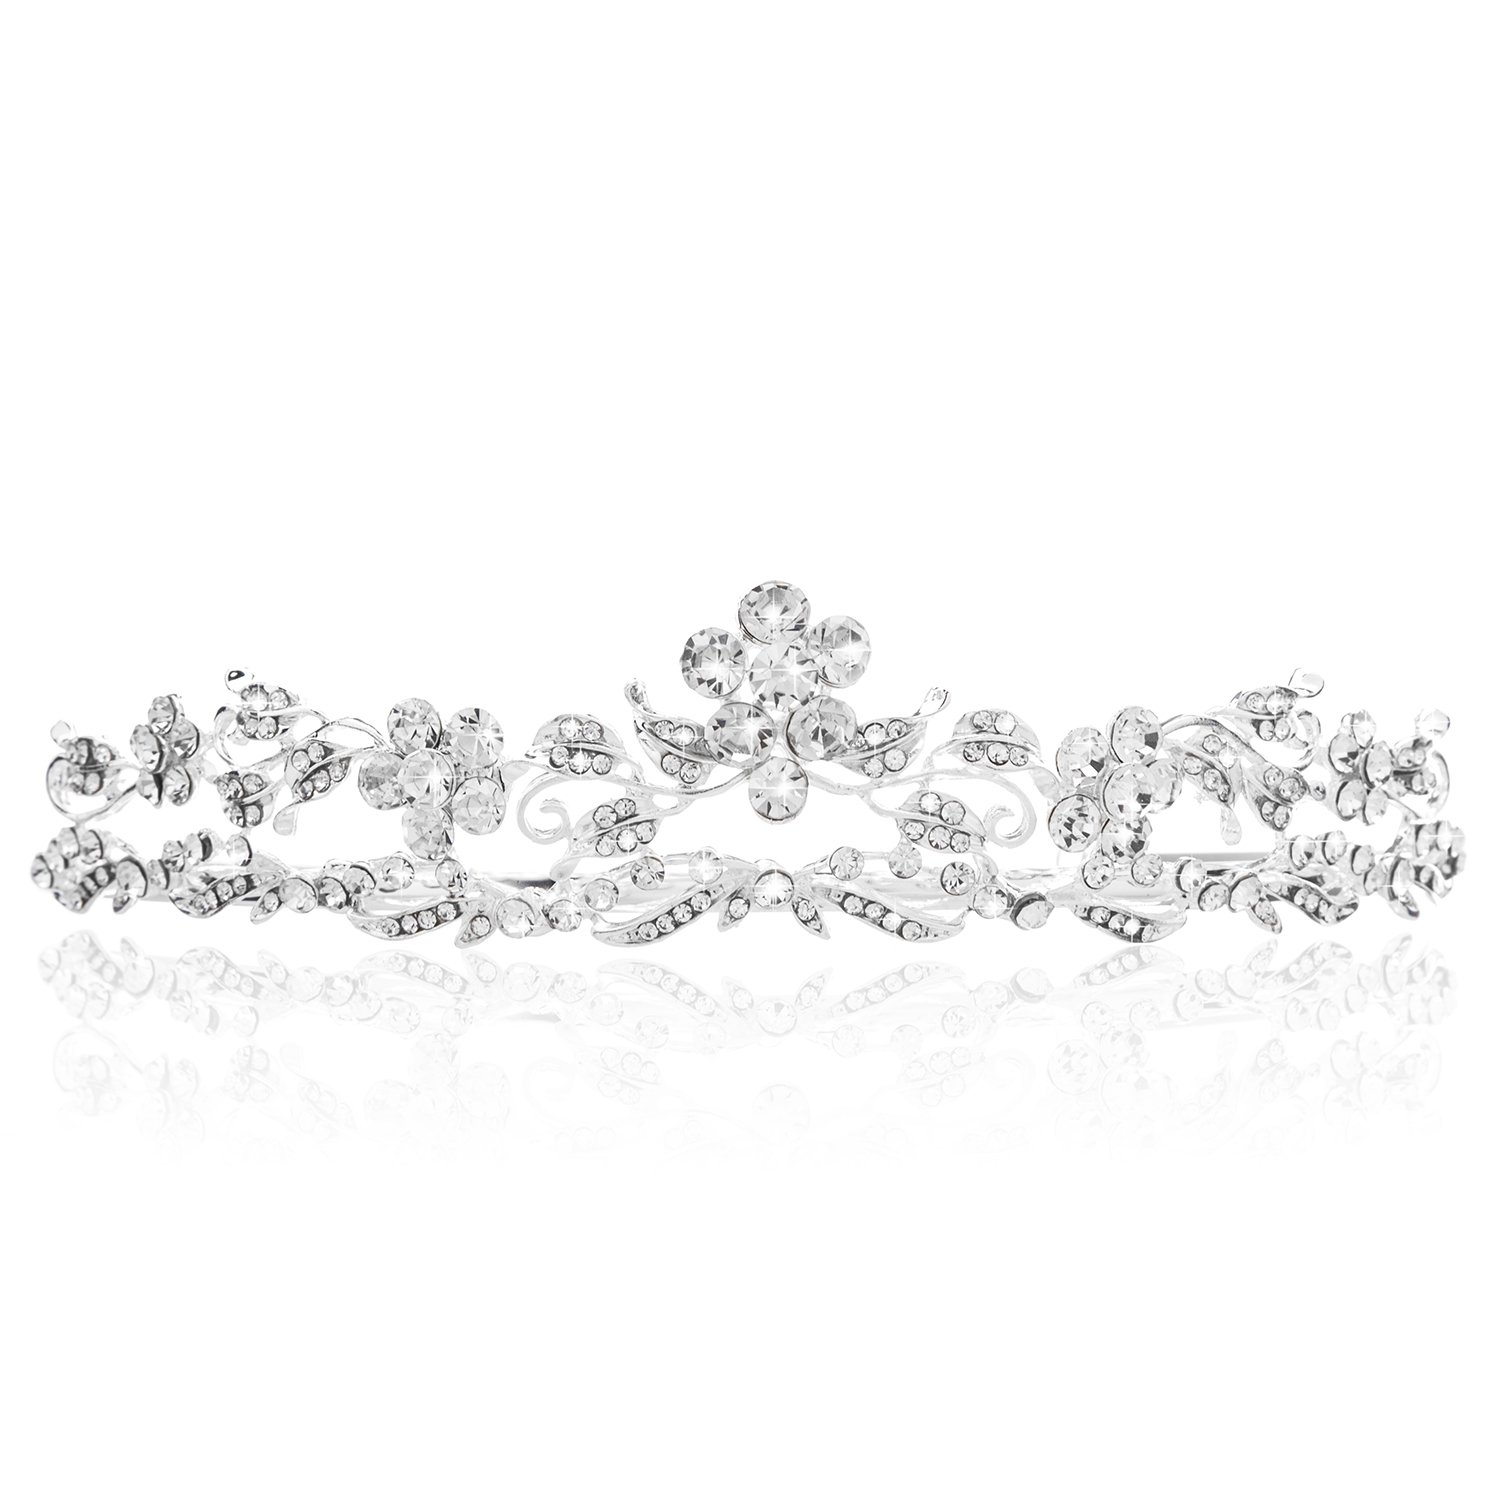 Tiaras and Crowns,Bienna Wedding Pageant Prom Birthday Party Tiara Crown Sparkly Rhinestones Crystal and Metal Decor Bridal Princess Headband Headpiece for Women Girls-Silver Style 5